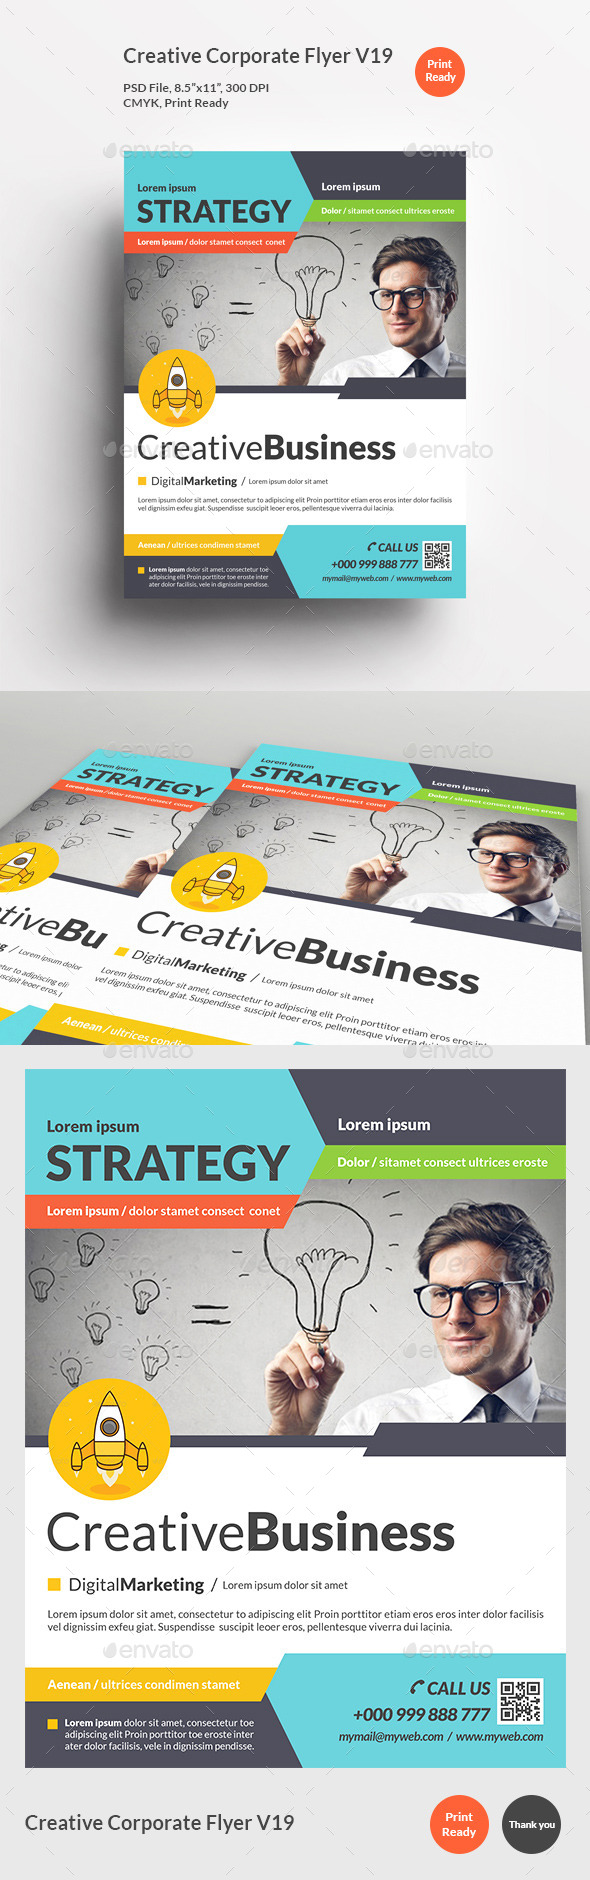 Creative Corporate Flyer V19 - Corporate Flyers